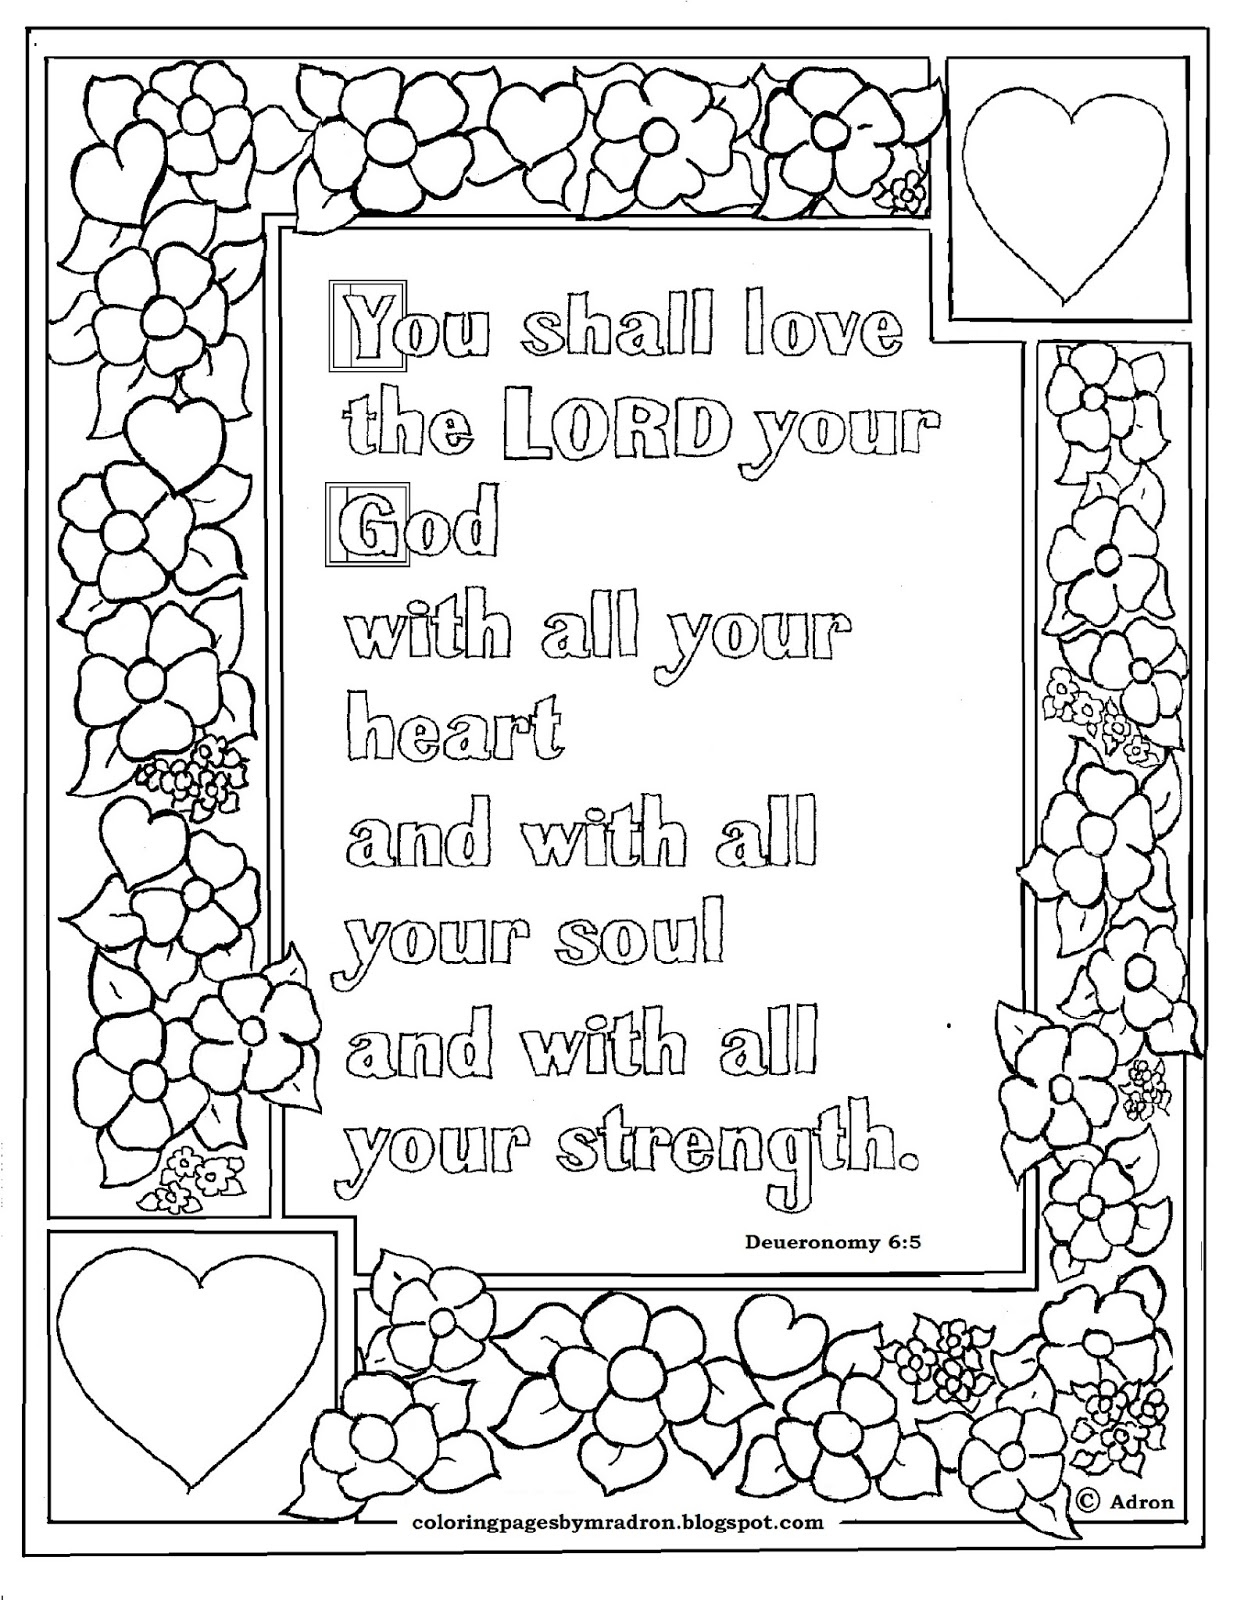 Coloring Pages For Kids By Mr Adron Deuteronomy 6 5